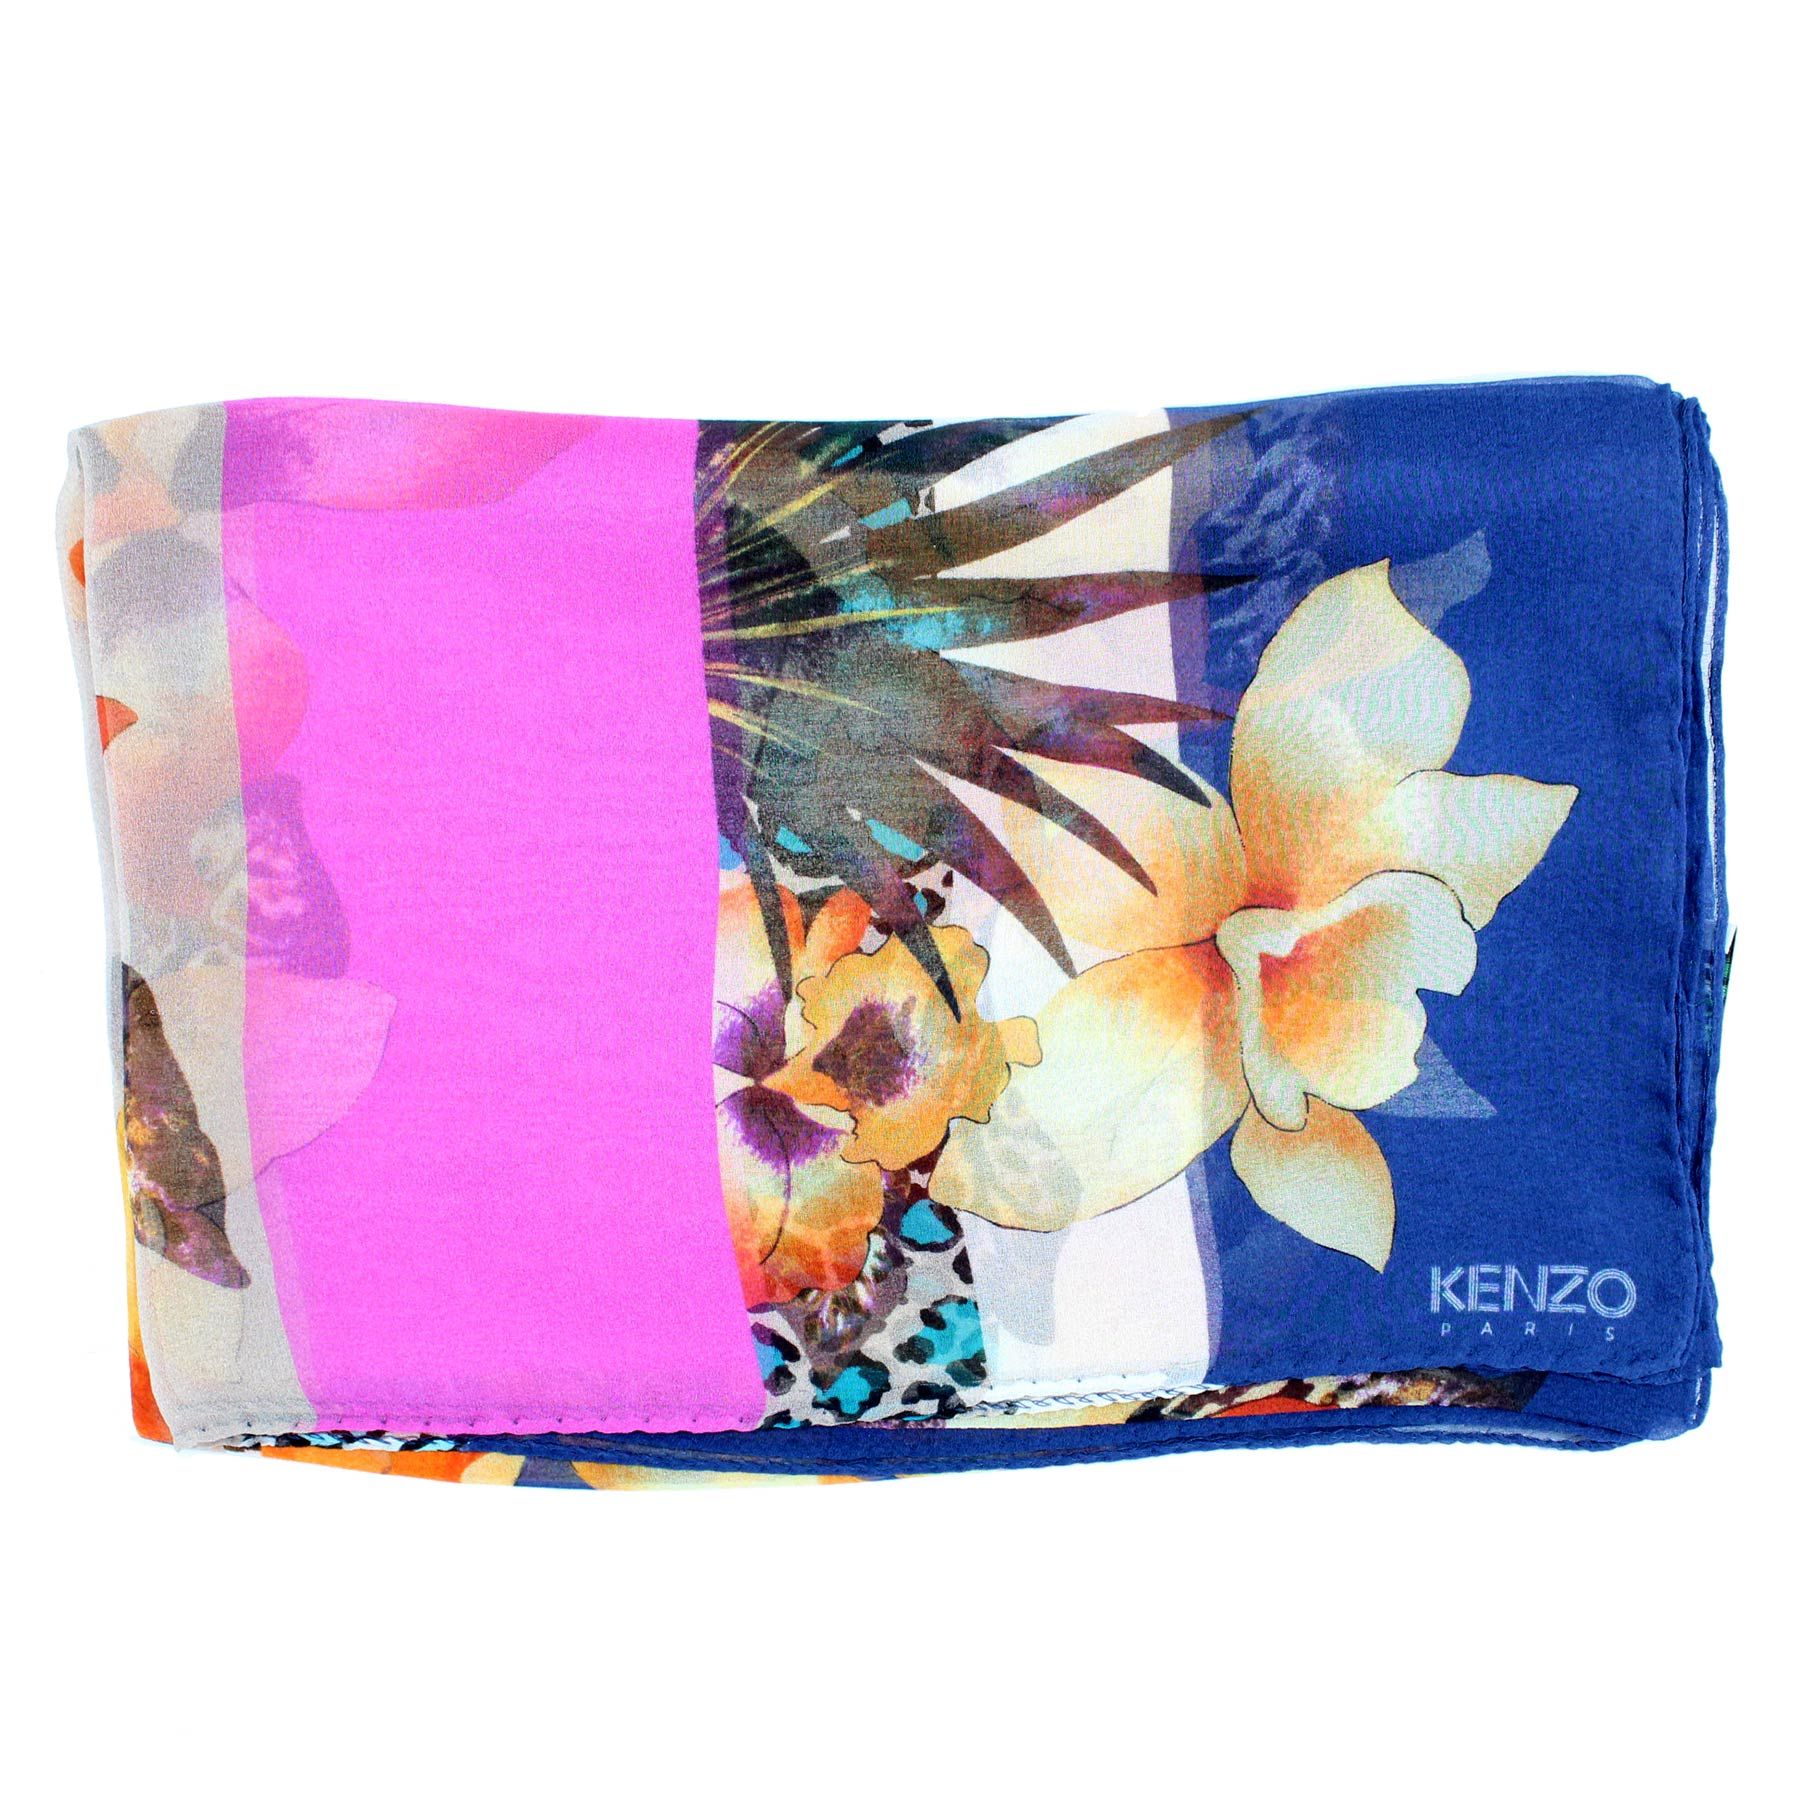 Kenzo Scarf Lapis Blue Orange Pink Chiffon Silk Shawl